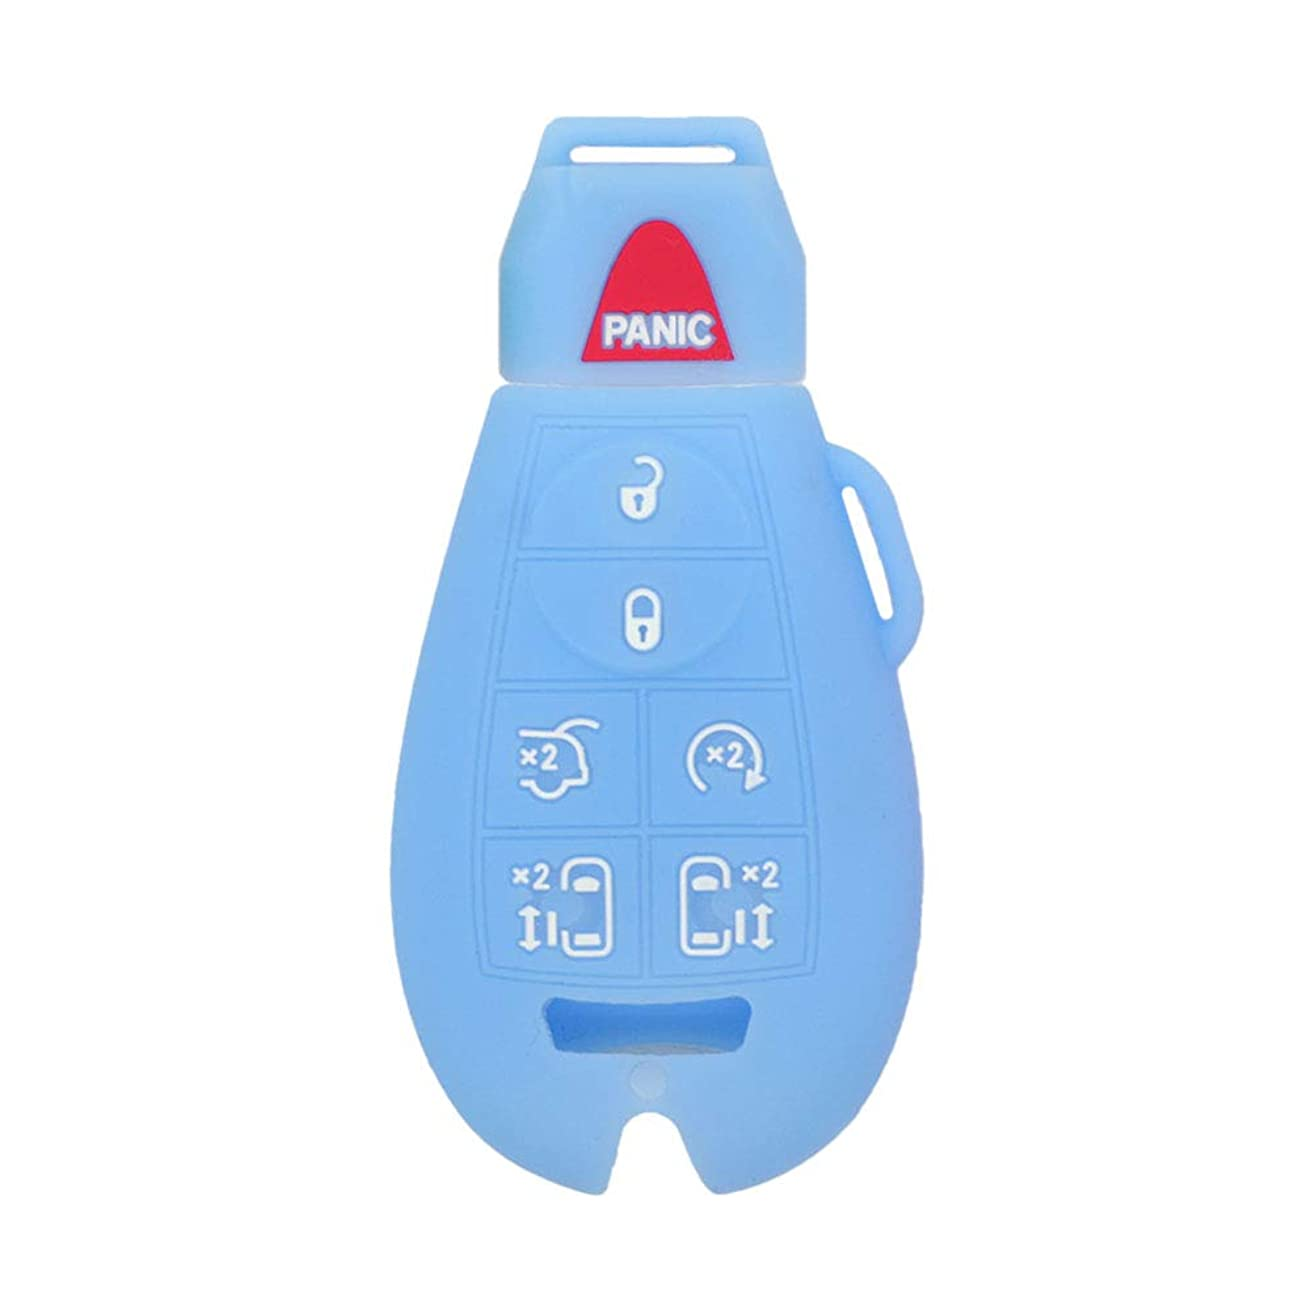 SEGADEN Silicone Cover Protector Case Skin Jacket fit for JEEP CHRYSLER DODGE 7 Button Smart Remote Key Fob CV4758 Light Blue